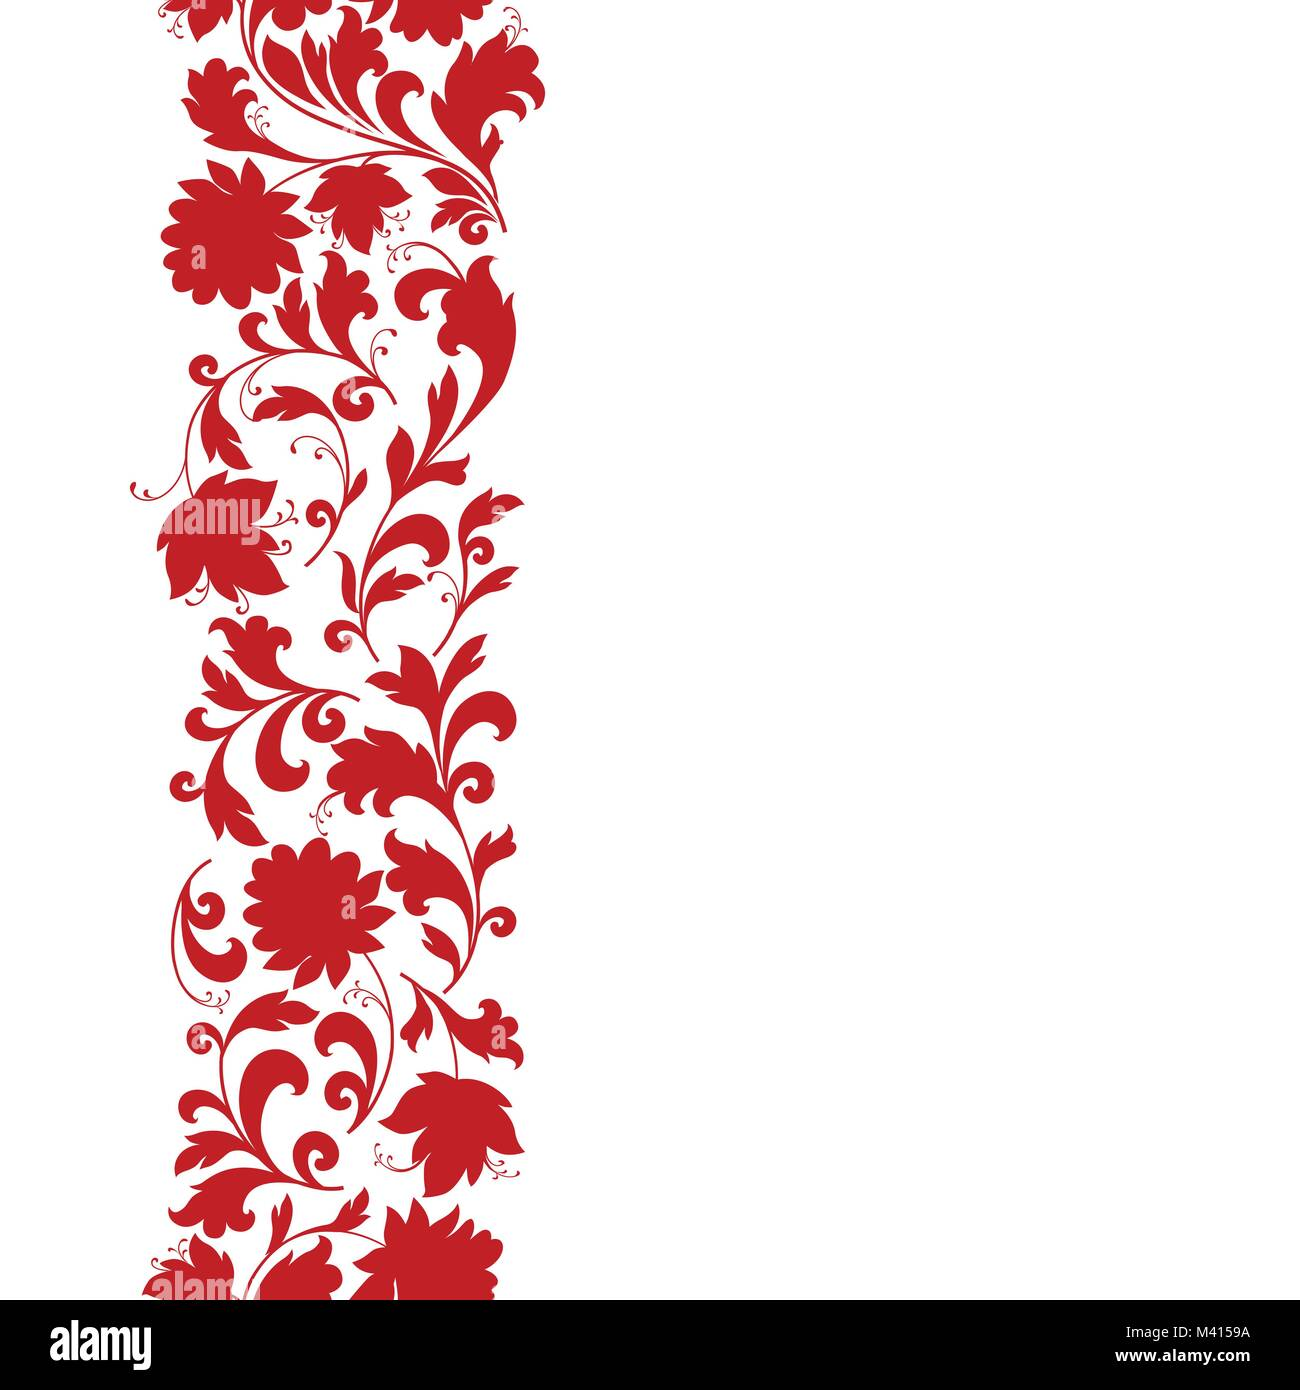 Ornate Border Stock Vector Images - Alamy